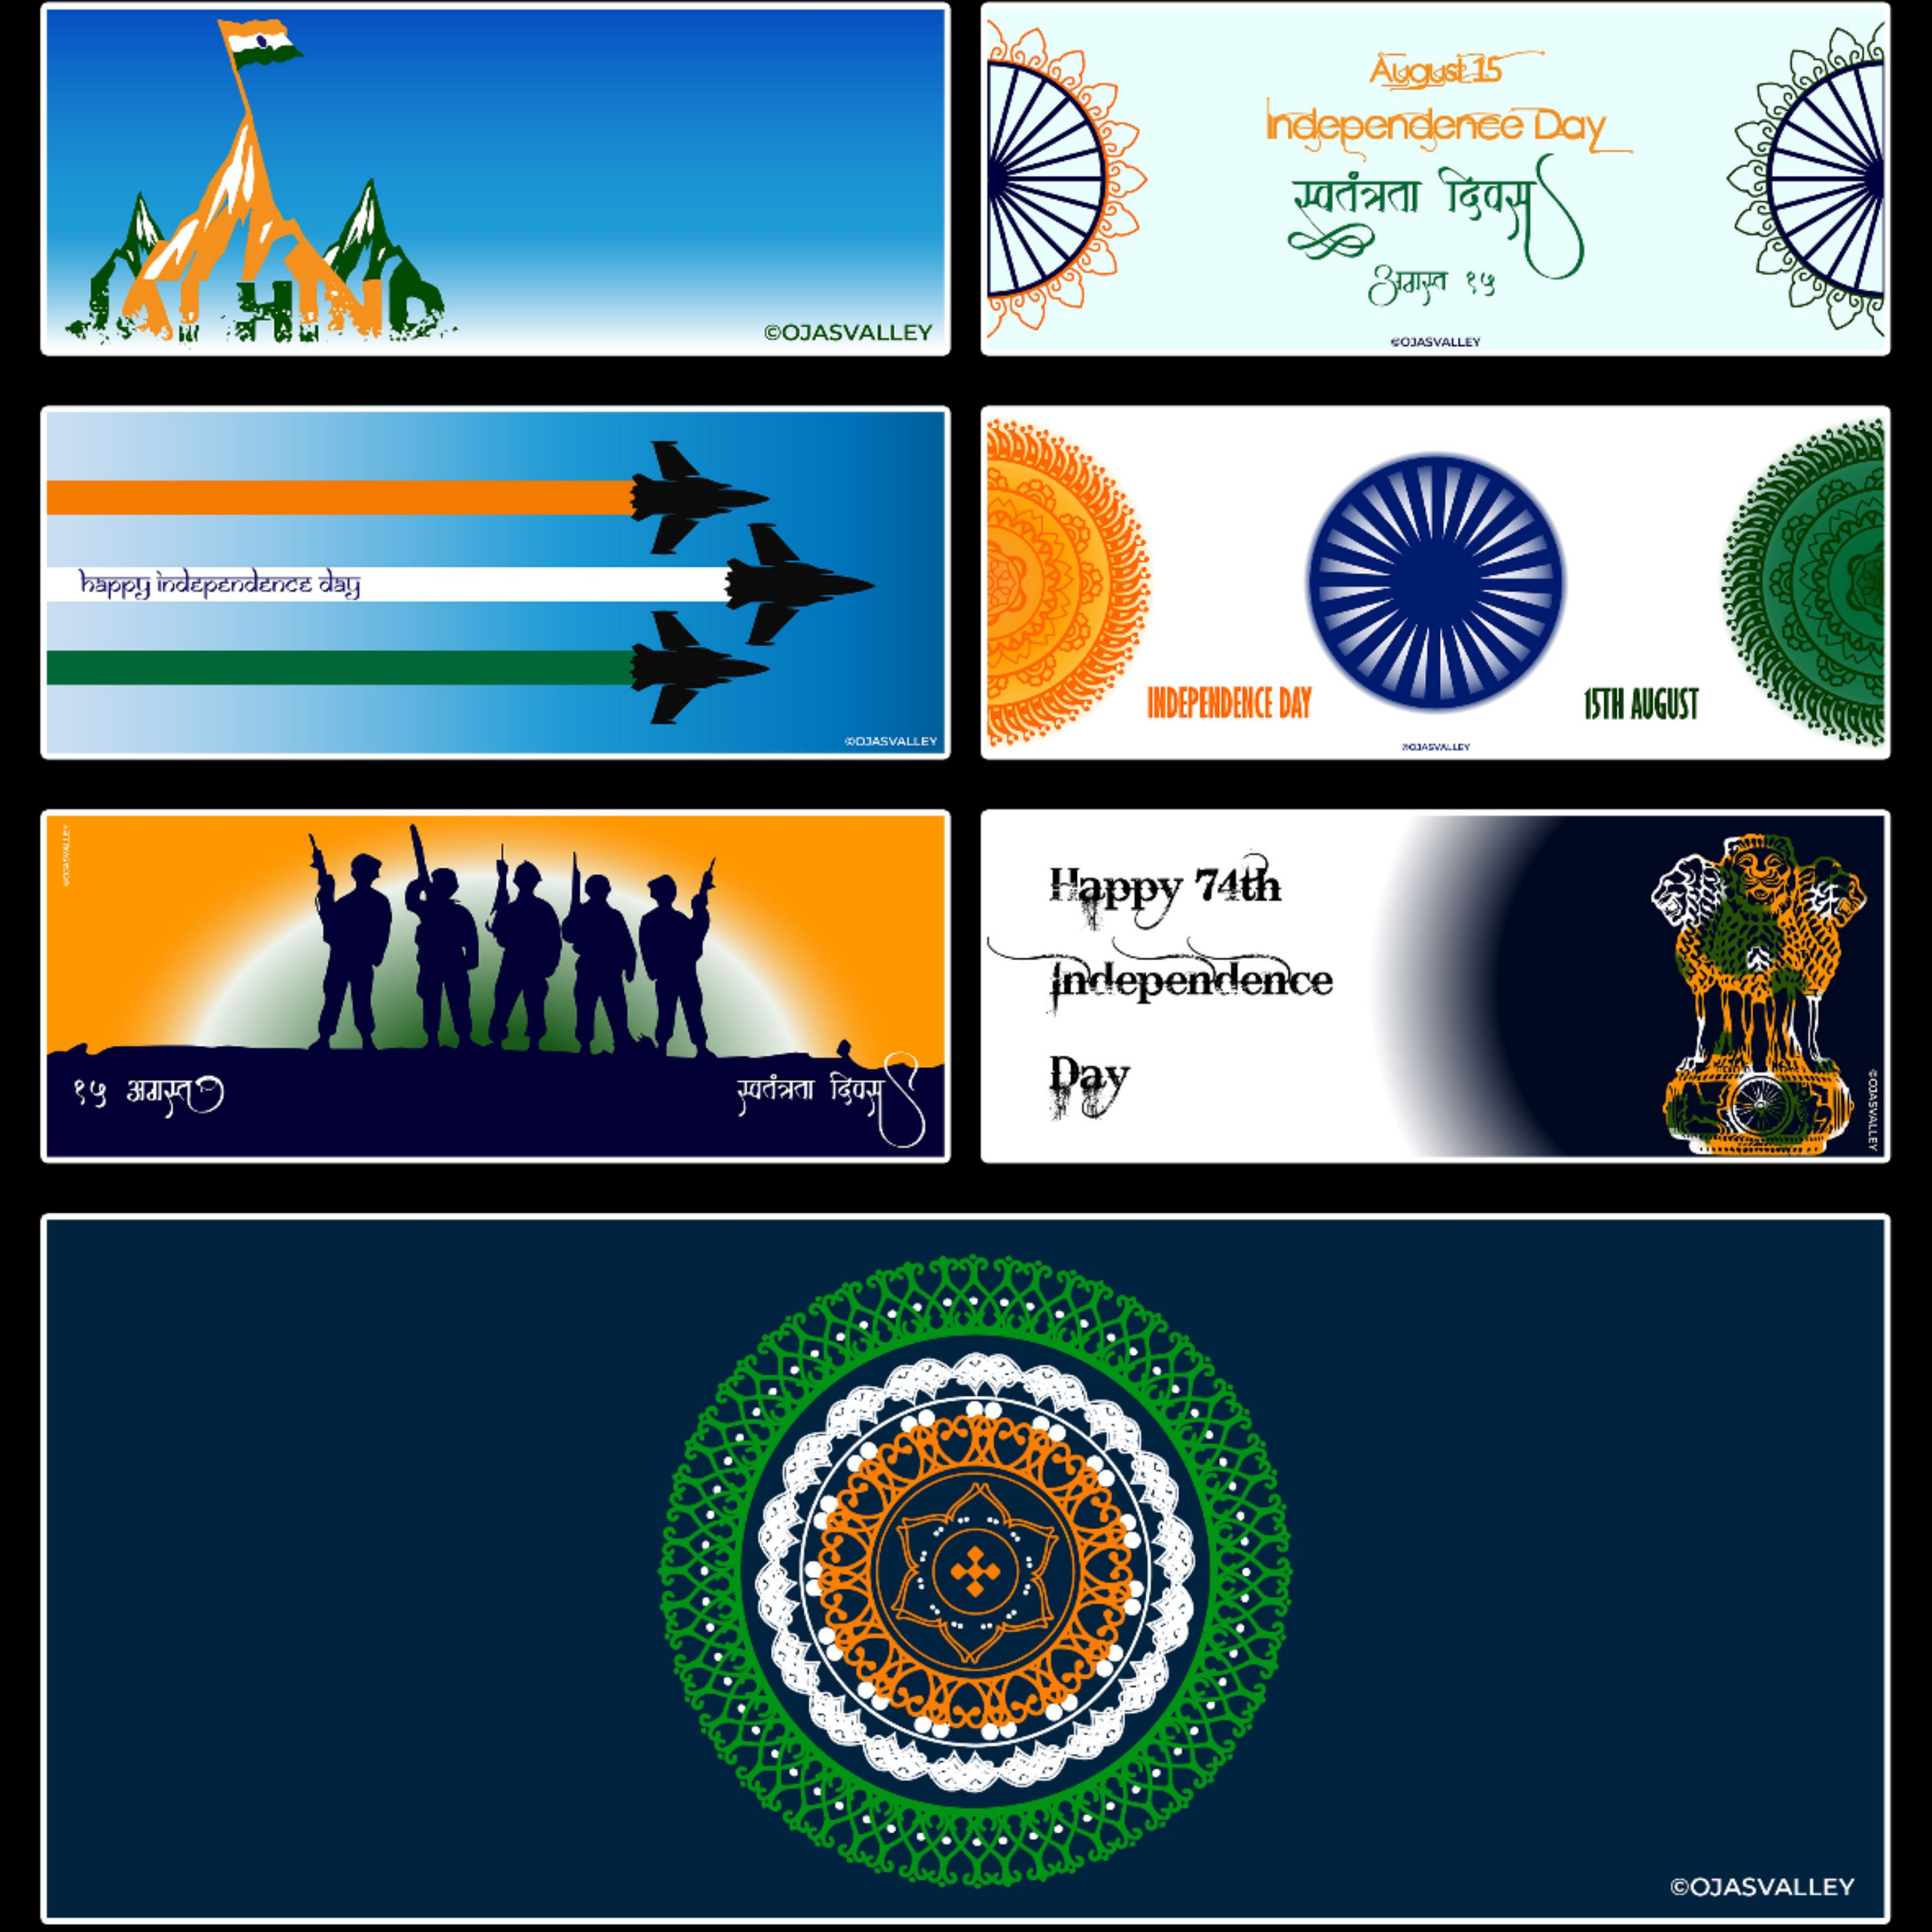 Independence Day Fb Covers Ojasvalley Independence Day India Independence Day Facebook Cover